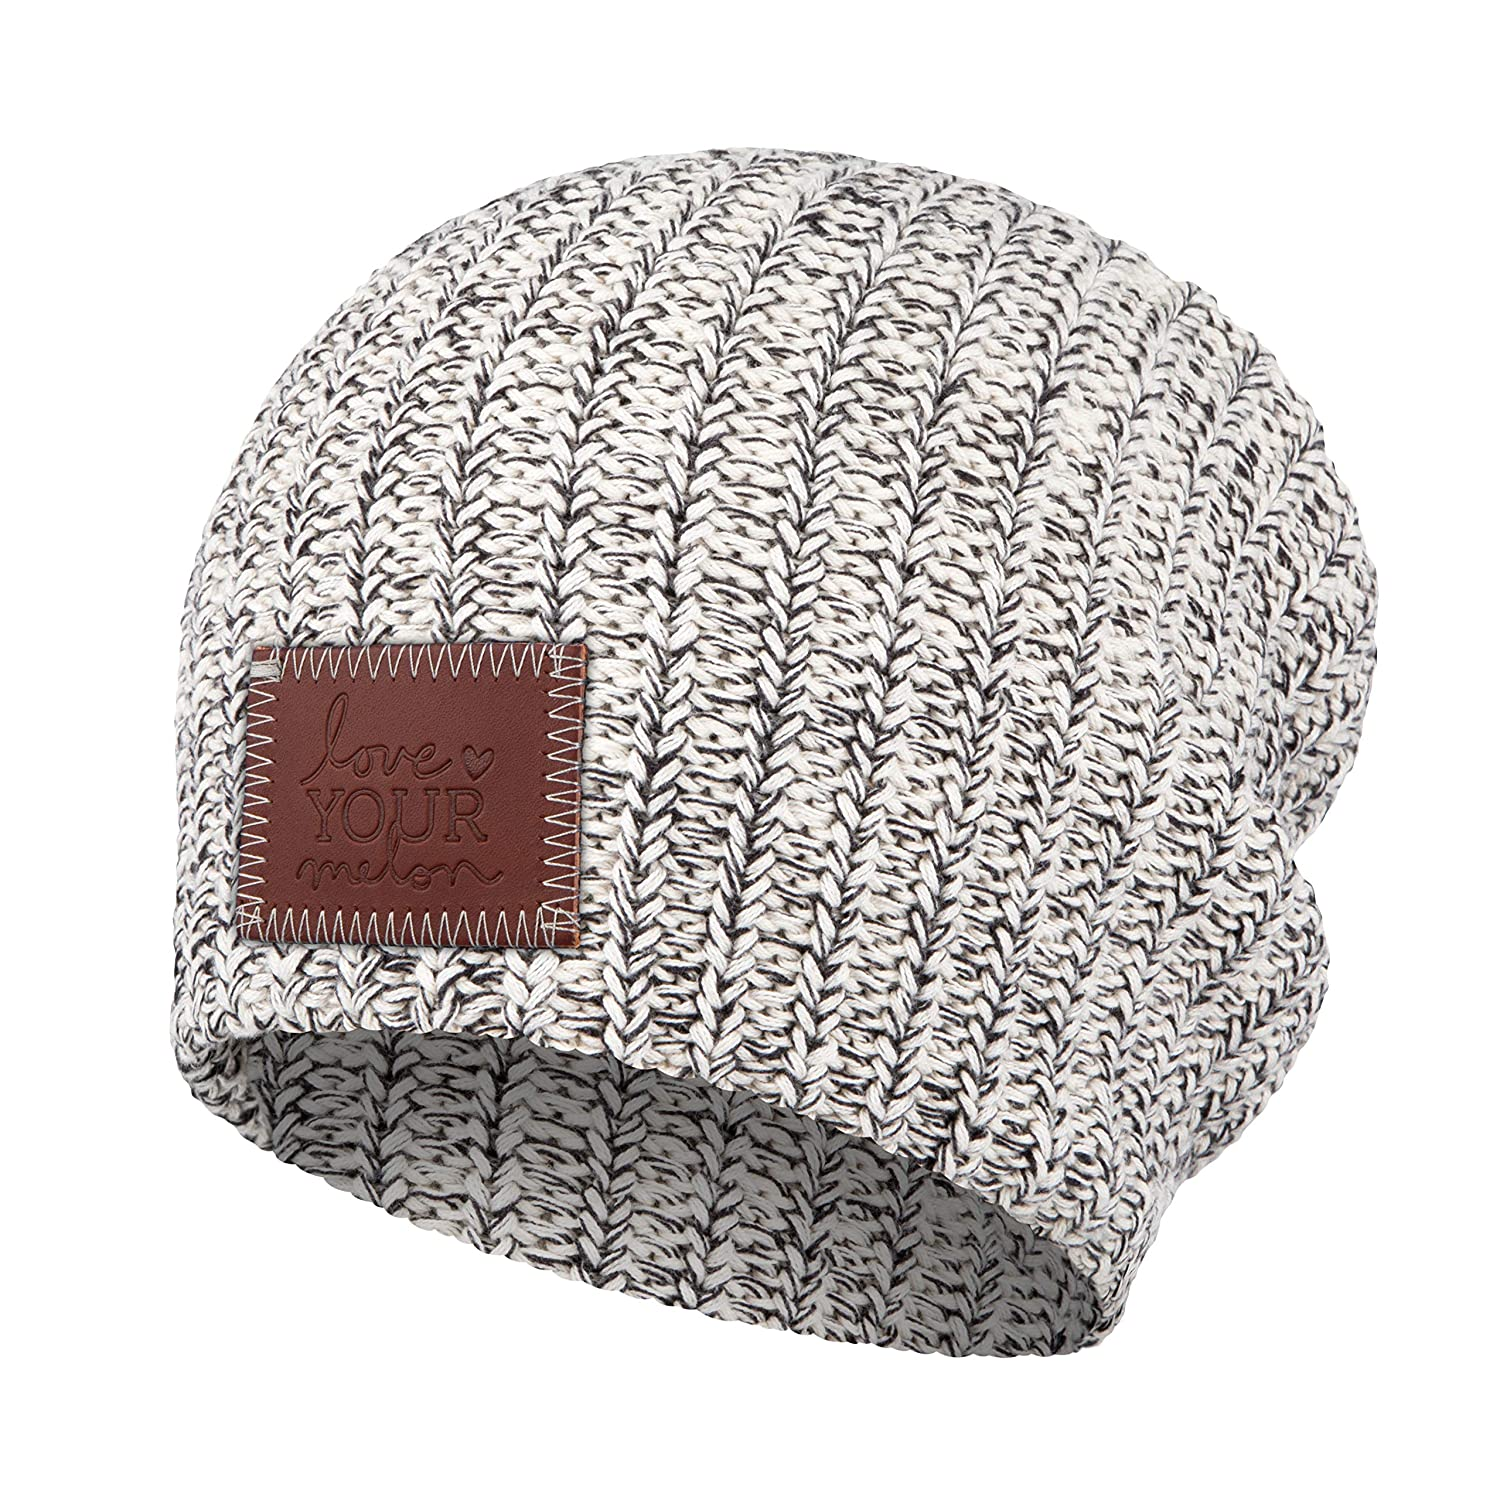 8f7c5ff25 Love Your Melon Black Speckled Beanie at Amazon Men's Clothing store: